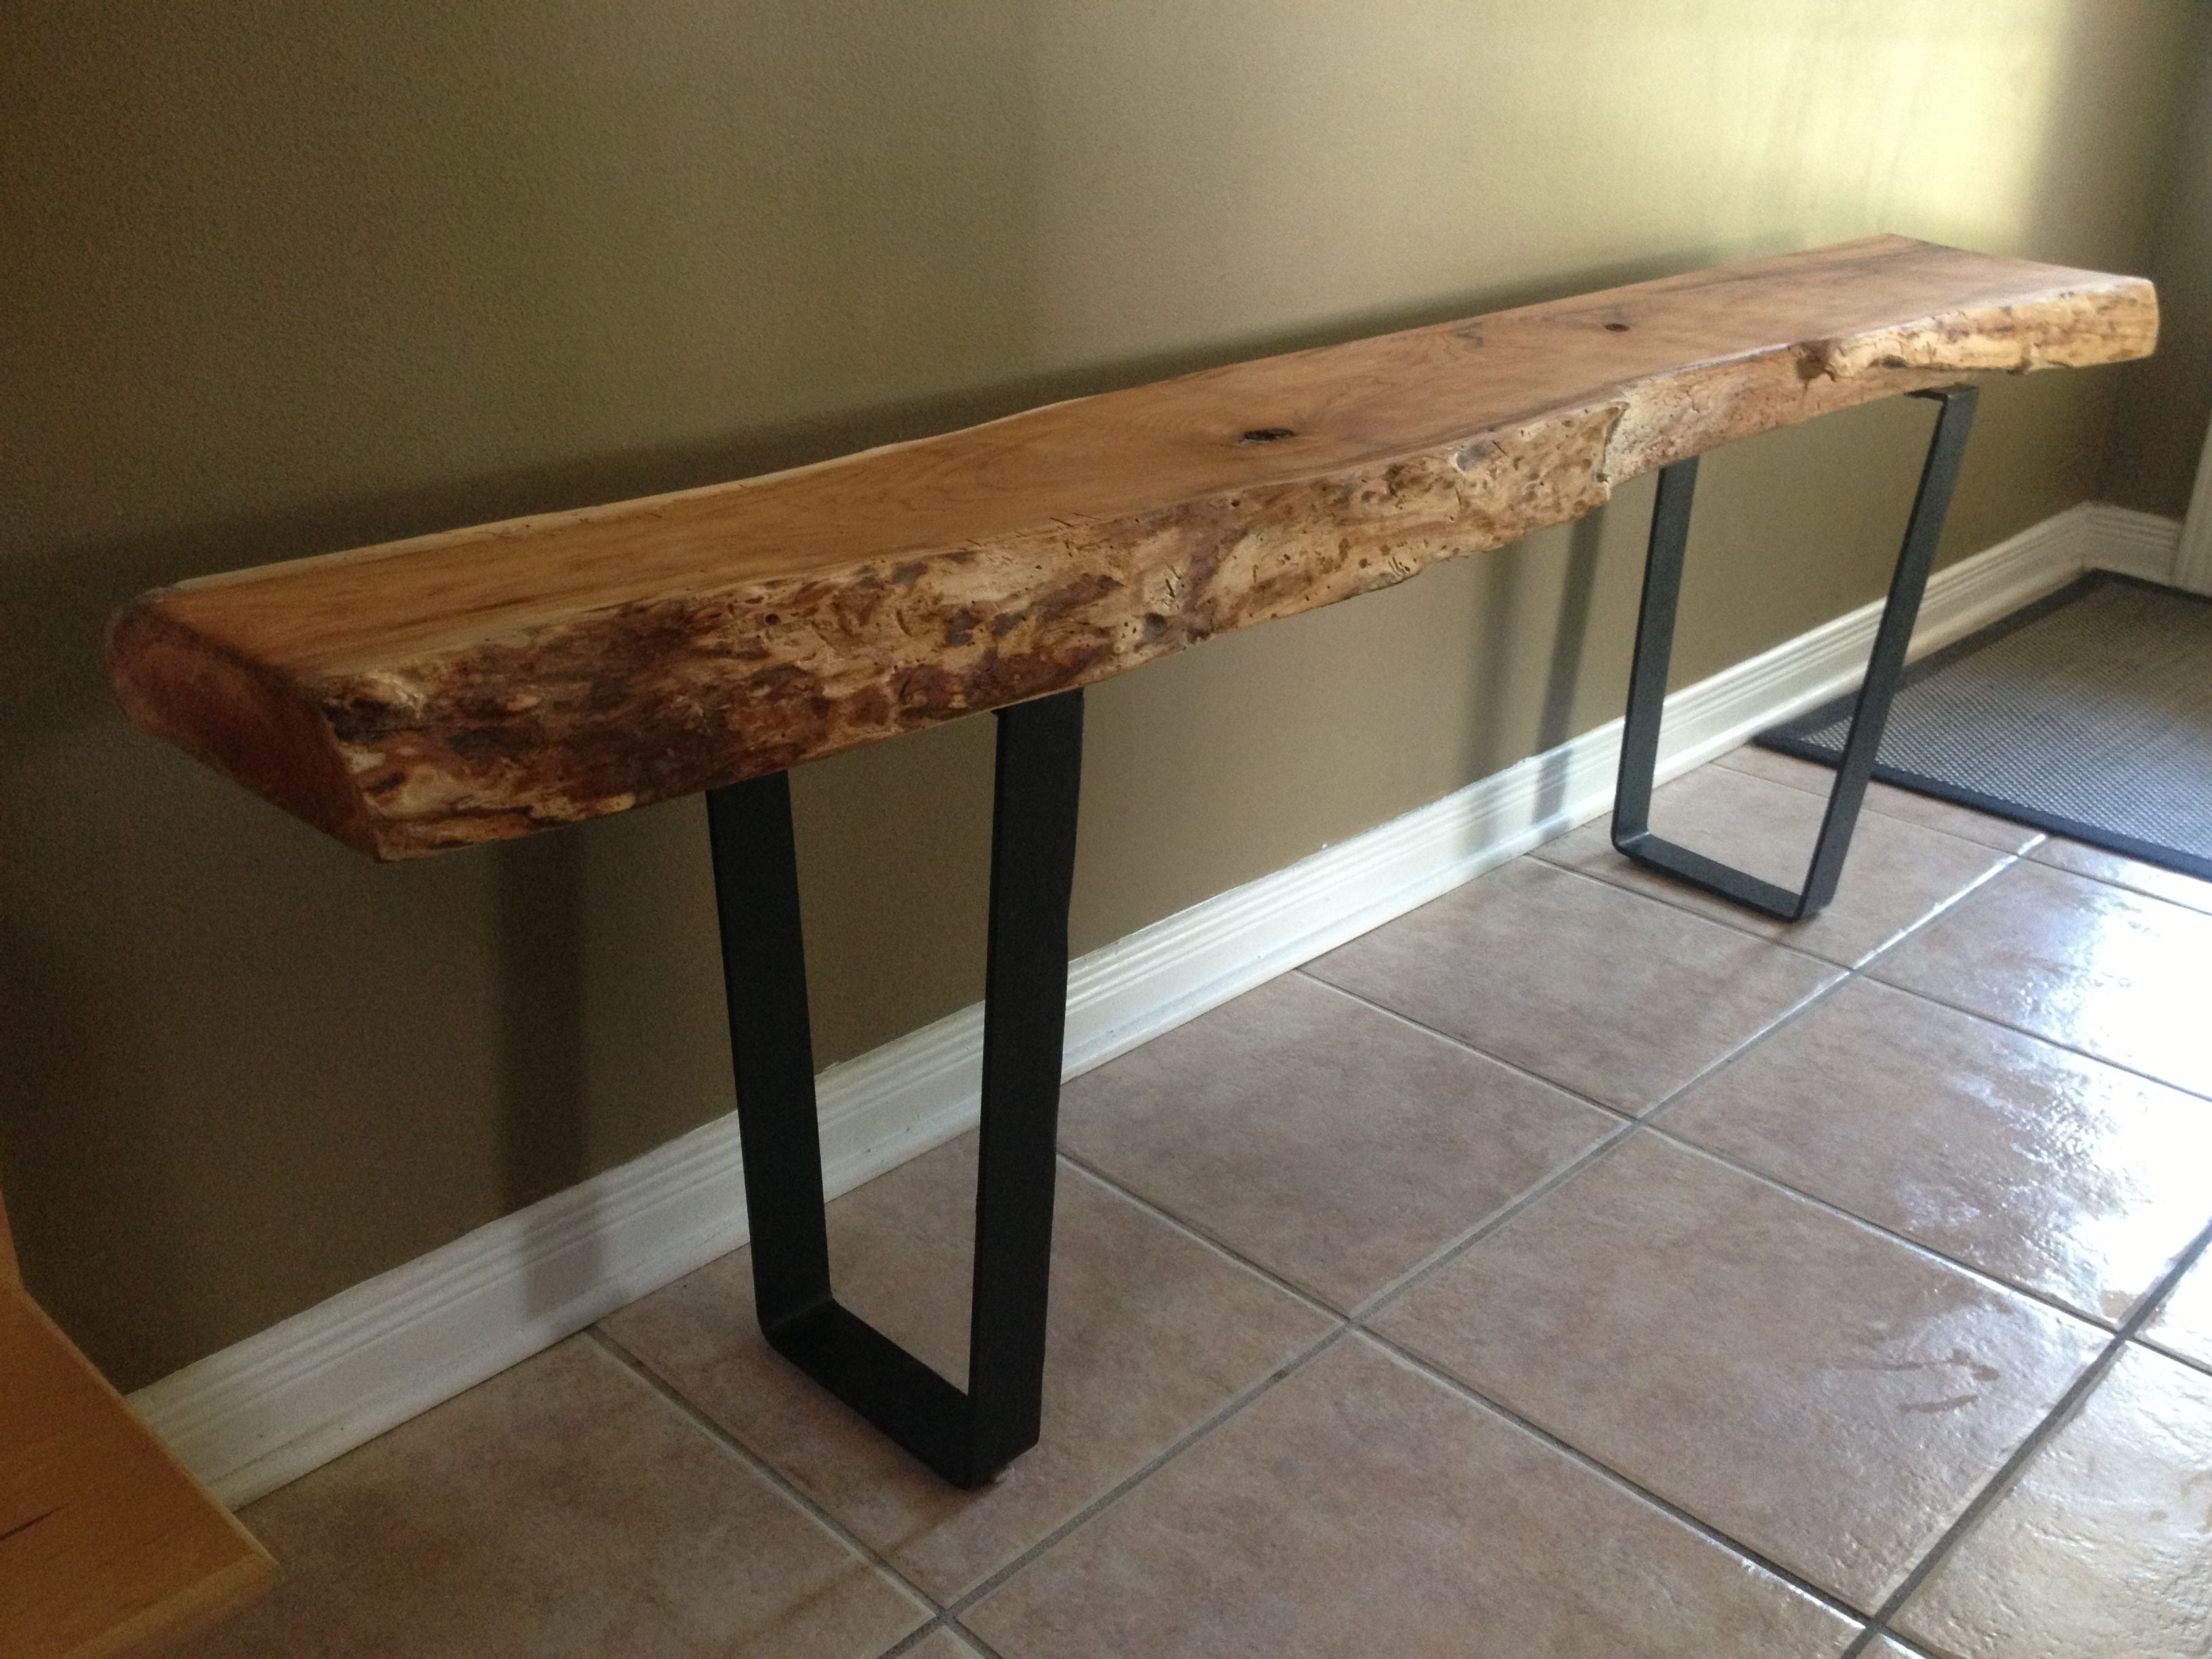 Pin On Tree Stump Tables Stump Side Tables Root Coffee Tables Tree Root Coffee Table Live Edge Coffee Tables Wood Metal Benches Log Furniture Ha [ 2448 x 3264 Pixel ]